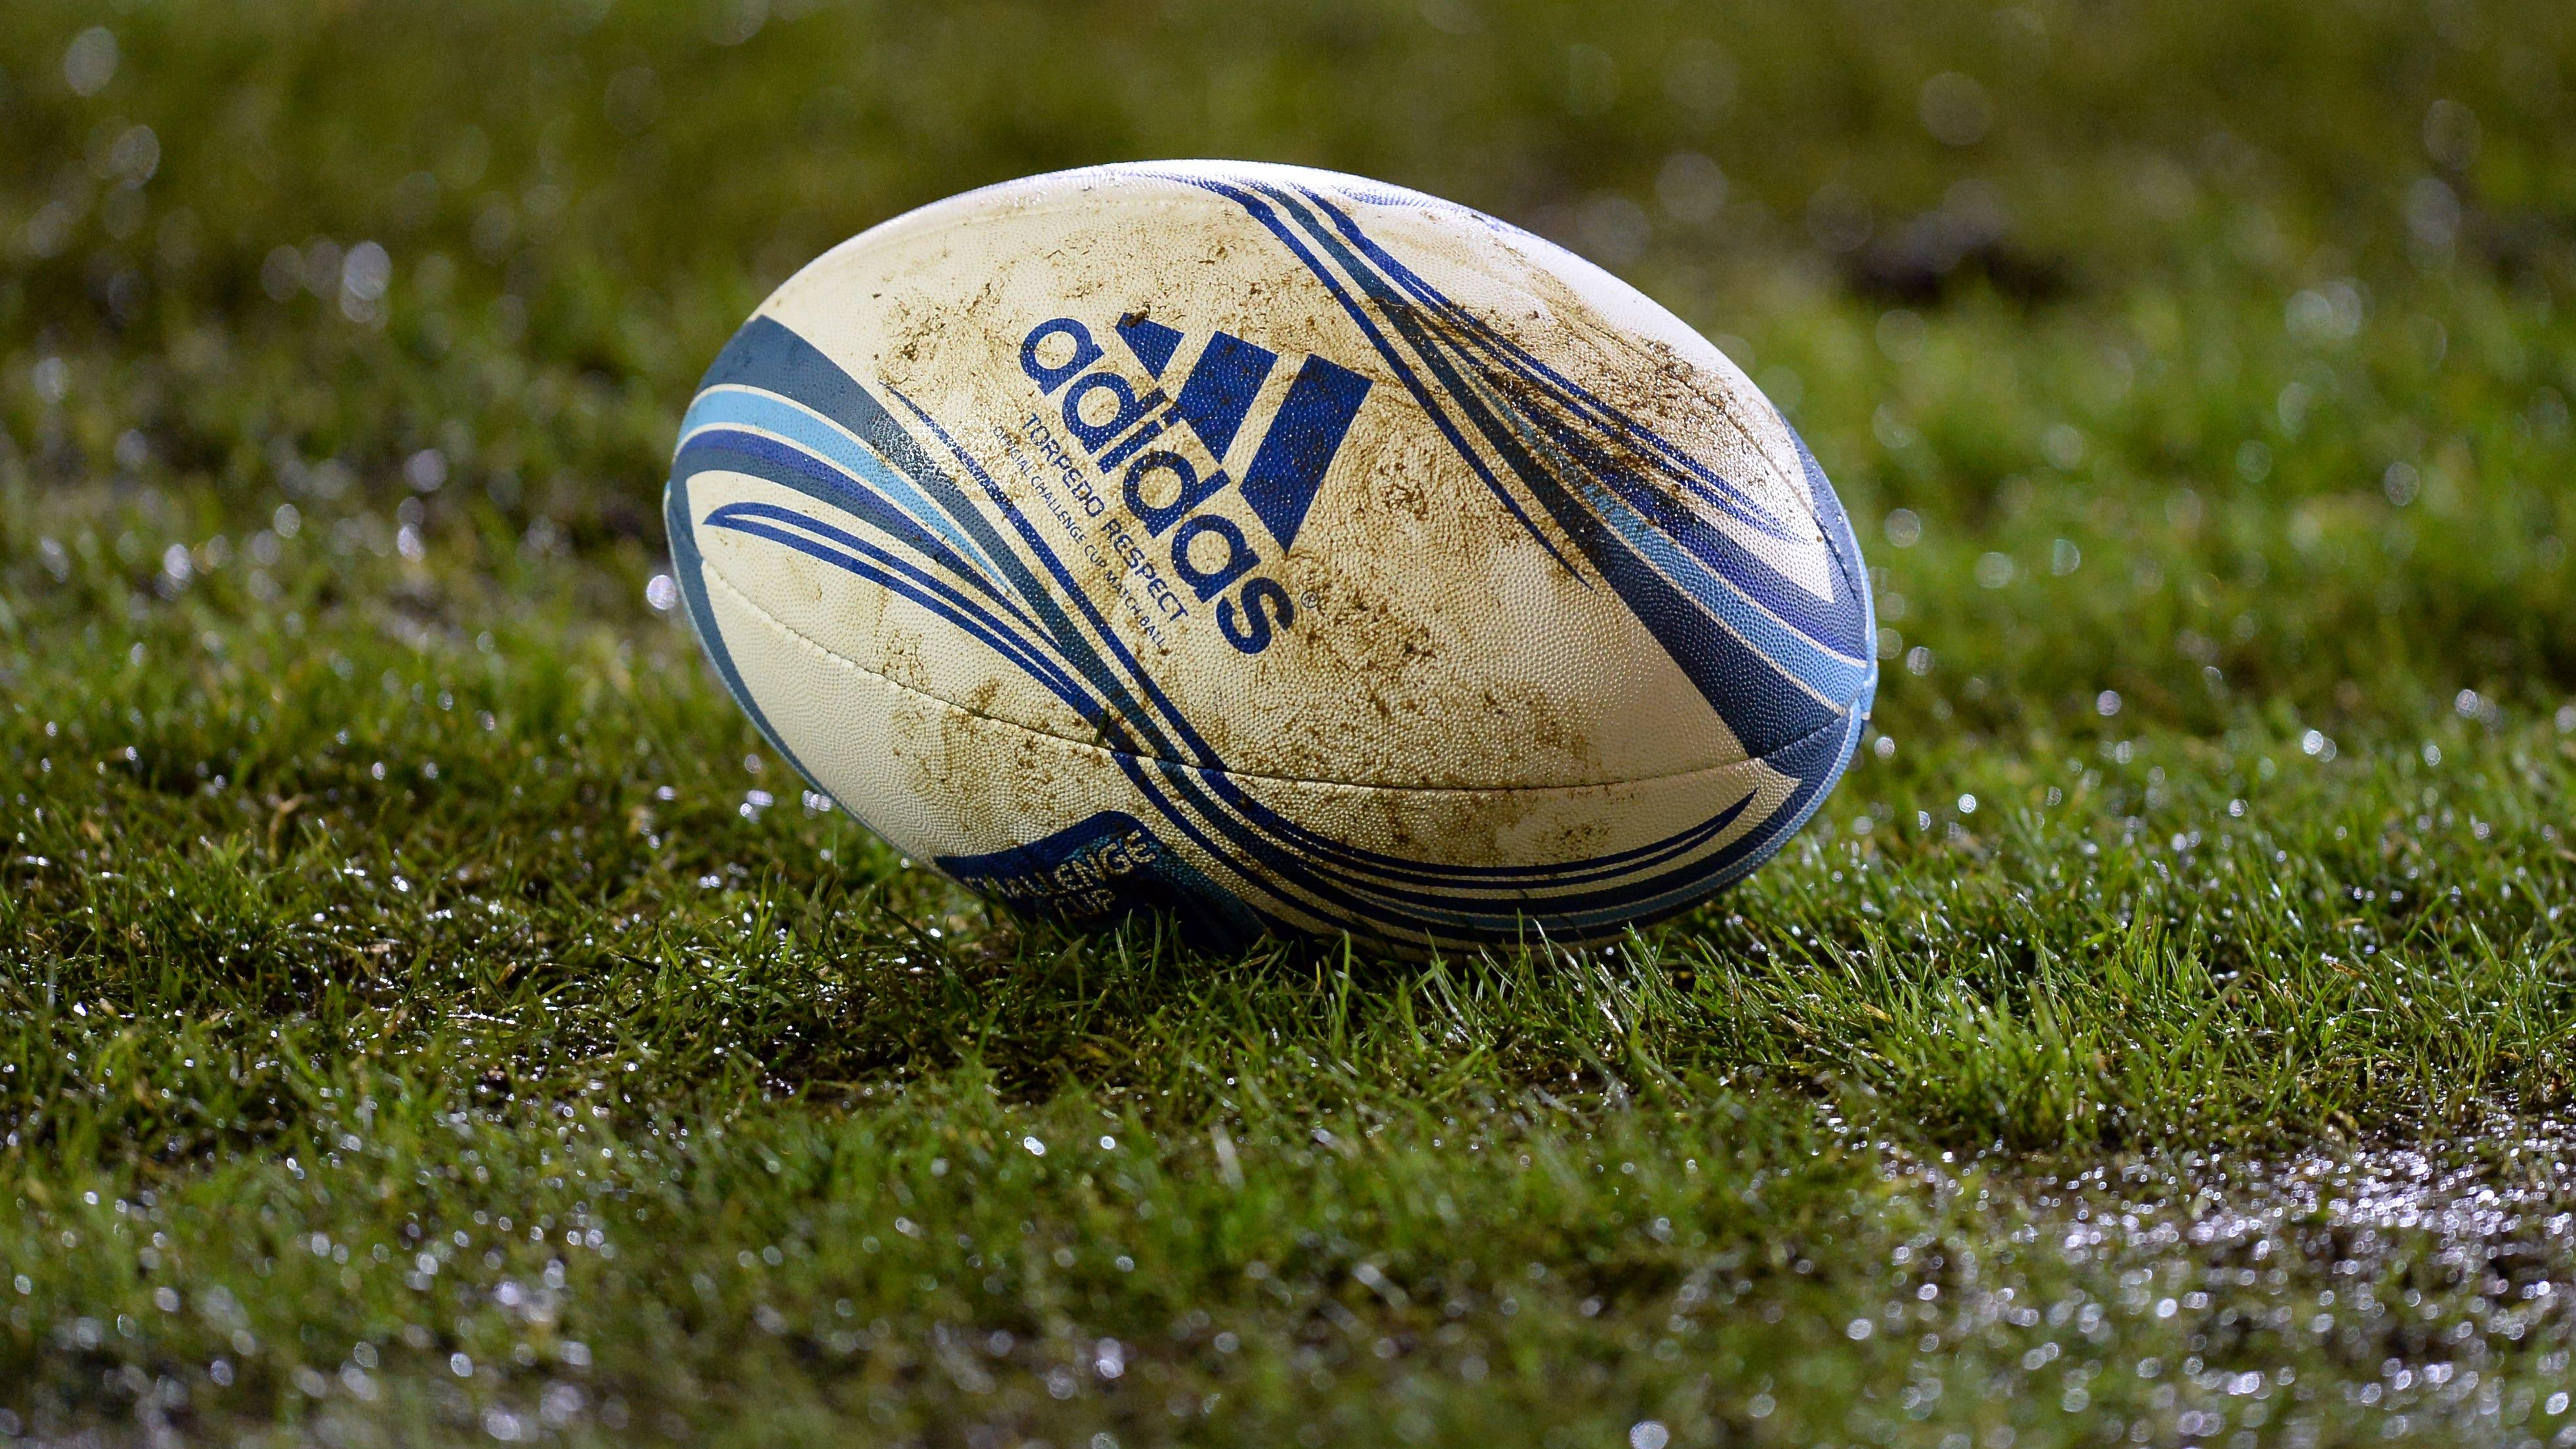 Grassroots rugby union given over £40million as part of sport survival package